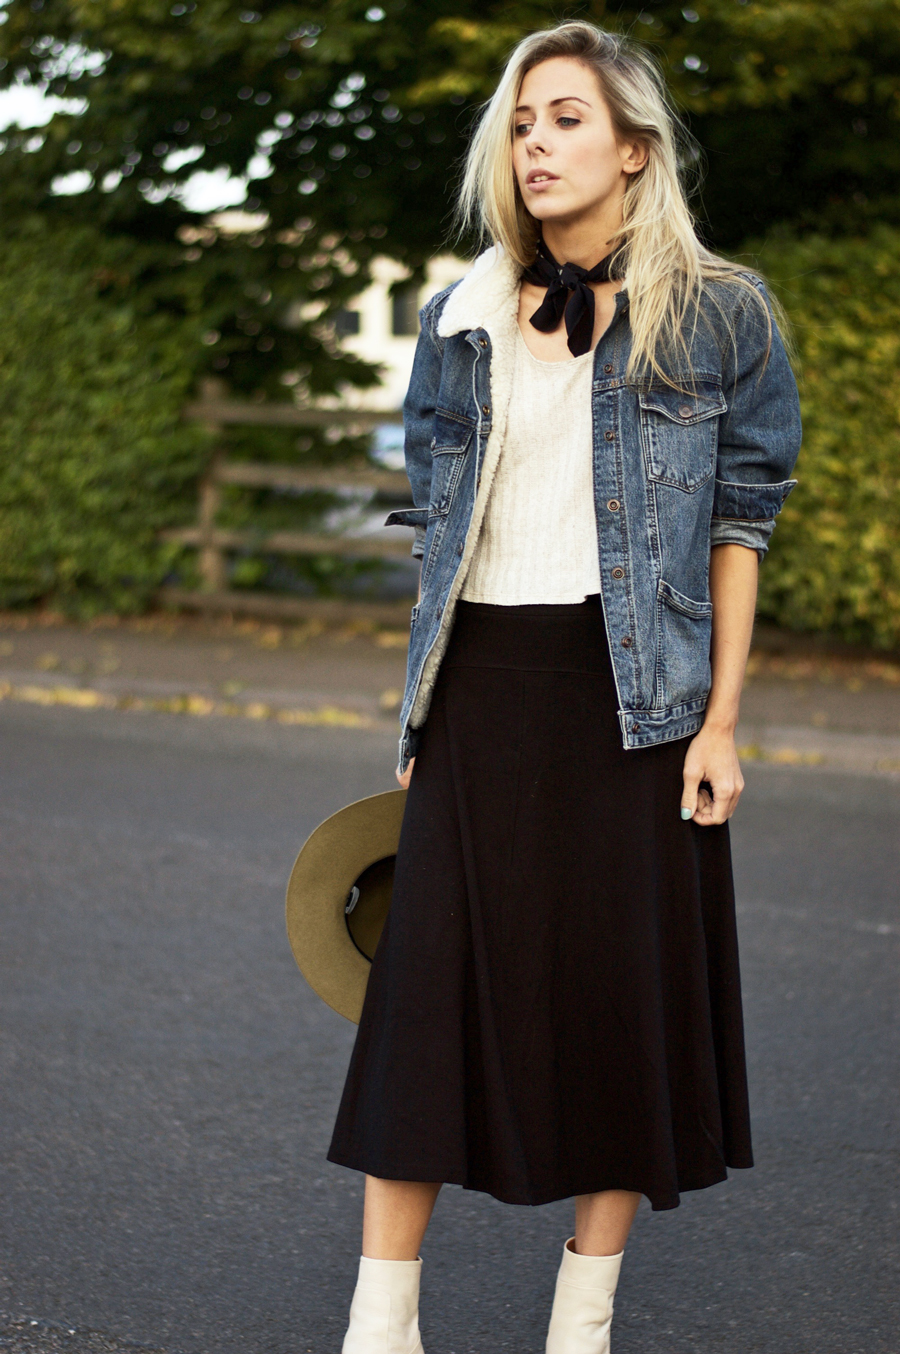 The Versatile Midi Skirt! Why Don't I own More?